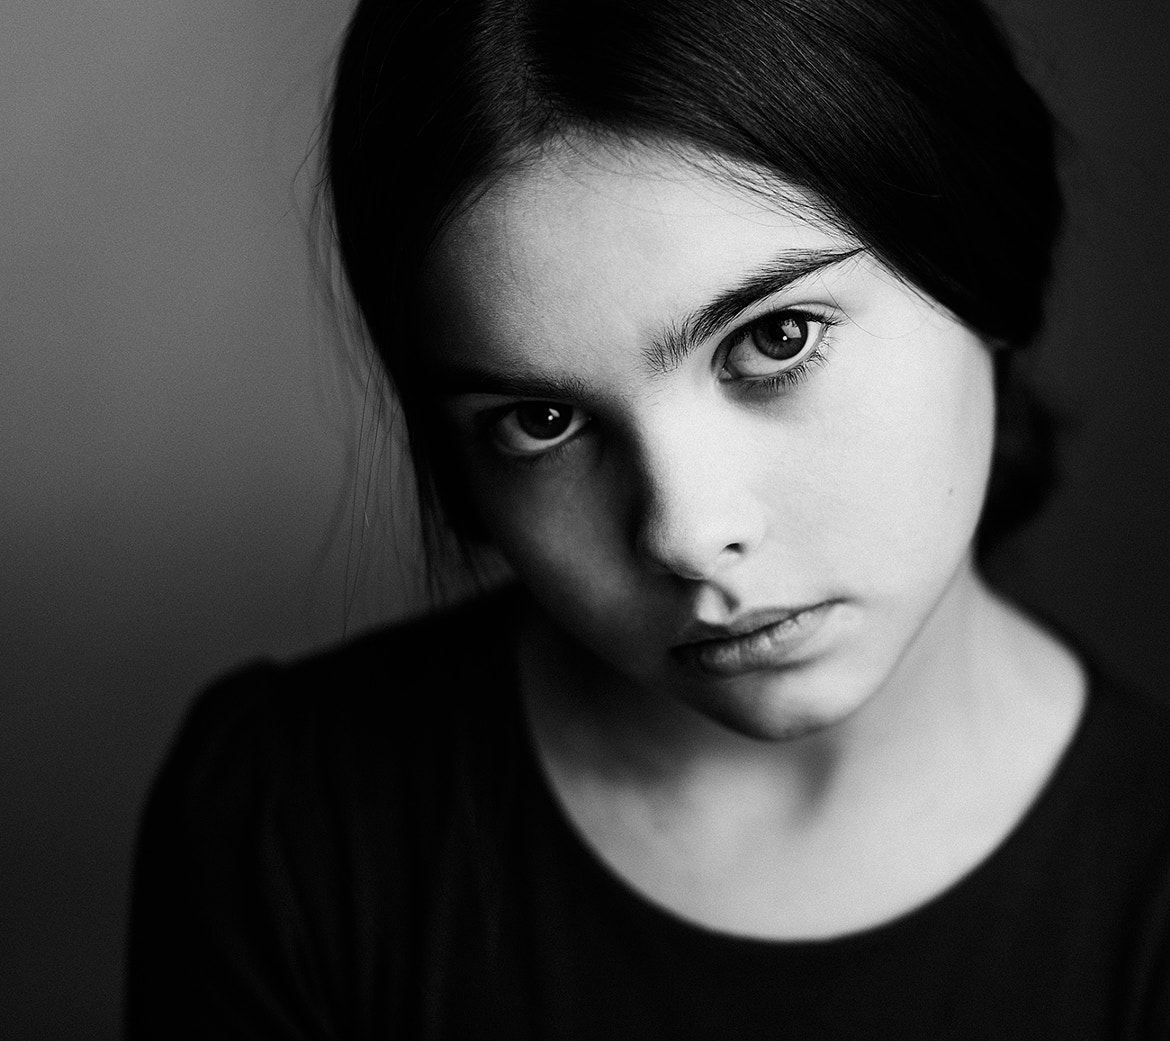 Photograph by Dmitry Ageev